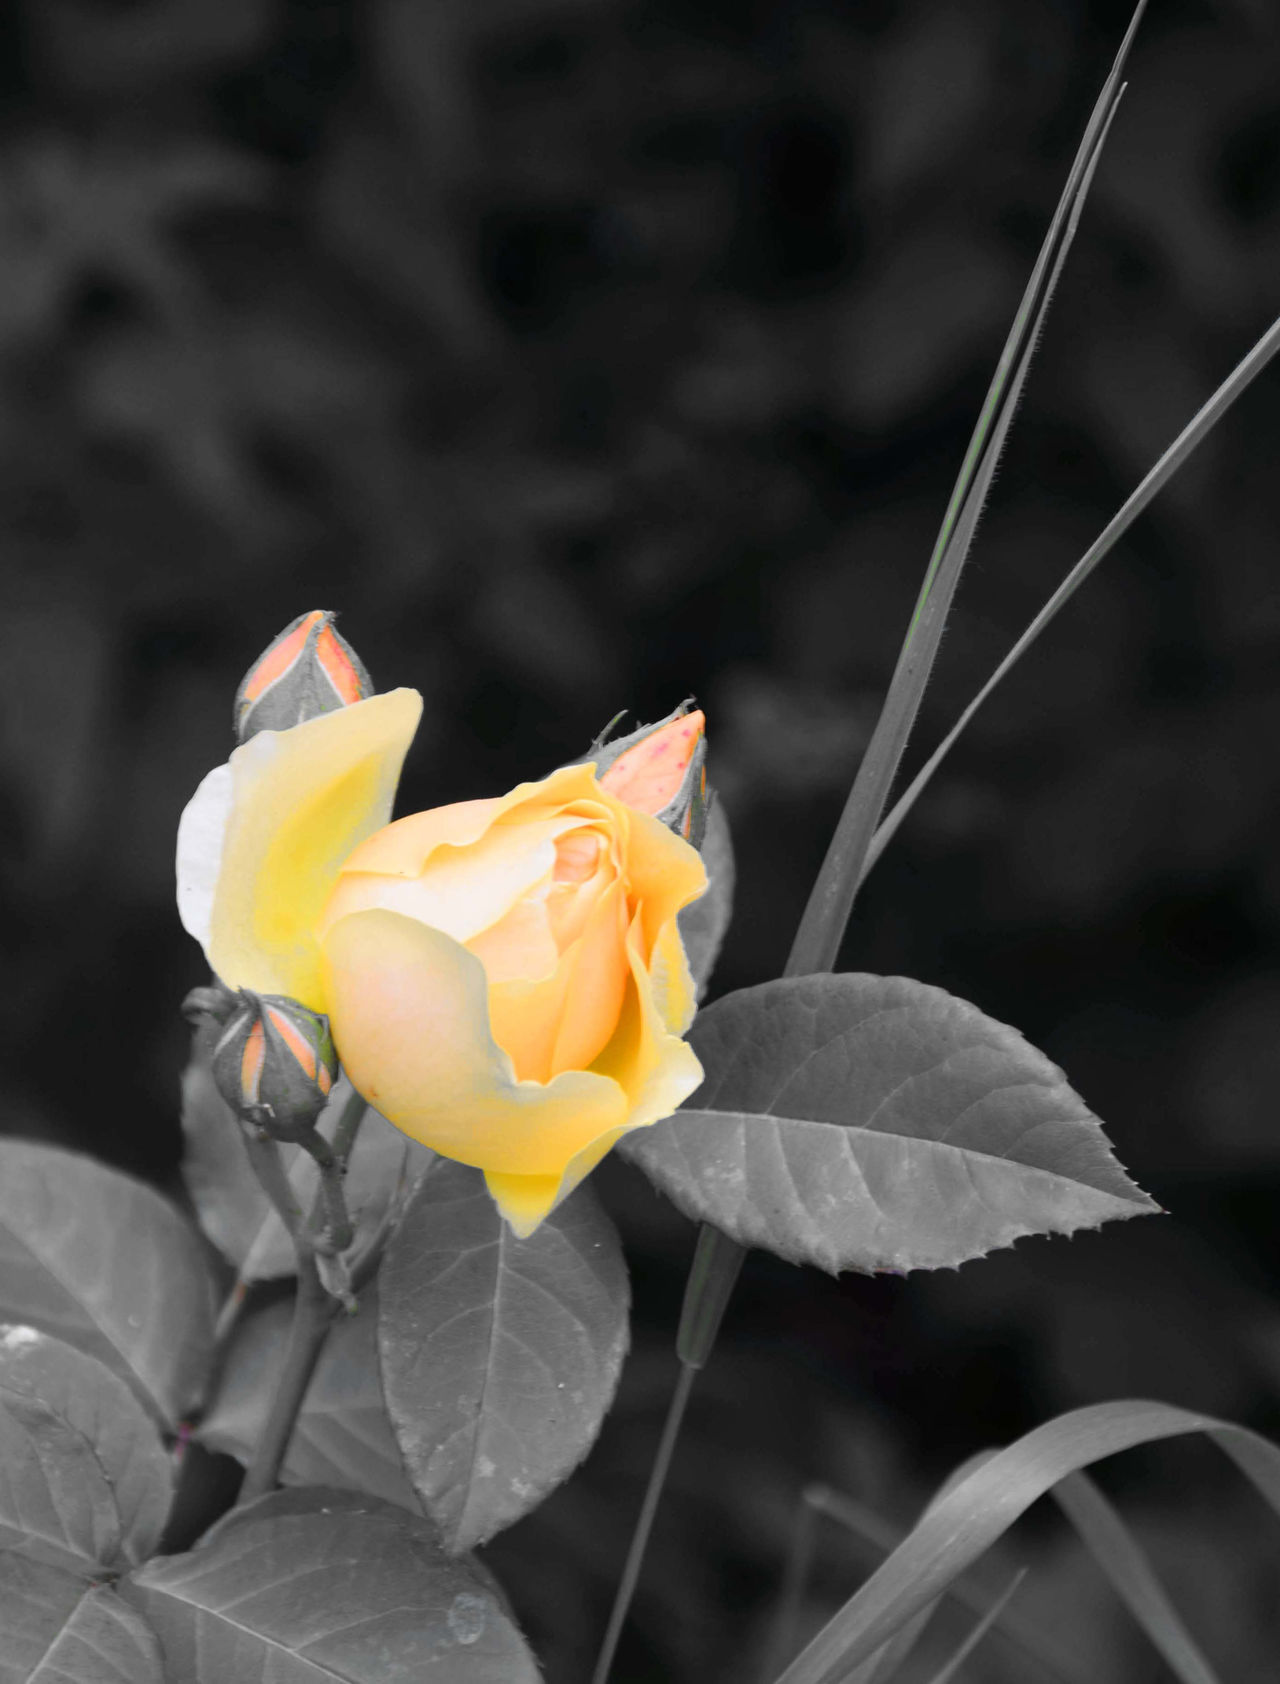 Flower colors - yellow rose Beauty In Nature Black And White Roses Rose🌹 Roses🌹 Playing With Colors Playing With Colours Blooming Blossom Botany Flower Flower Head Fragility Freshness Nature Plant Rose - Flower Softness Yellow Yellow Rose Fine Art Photography